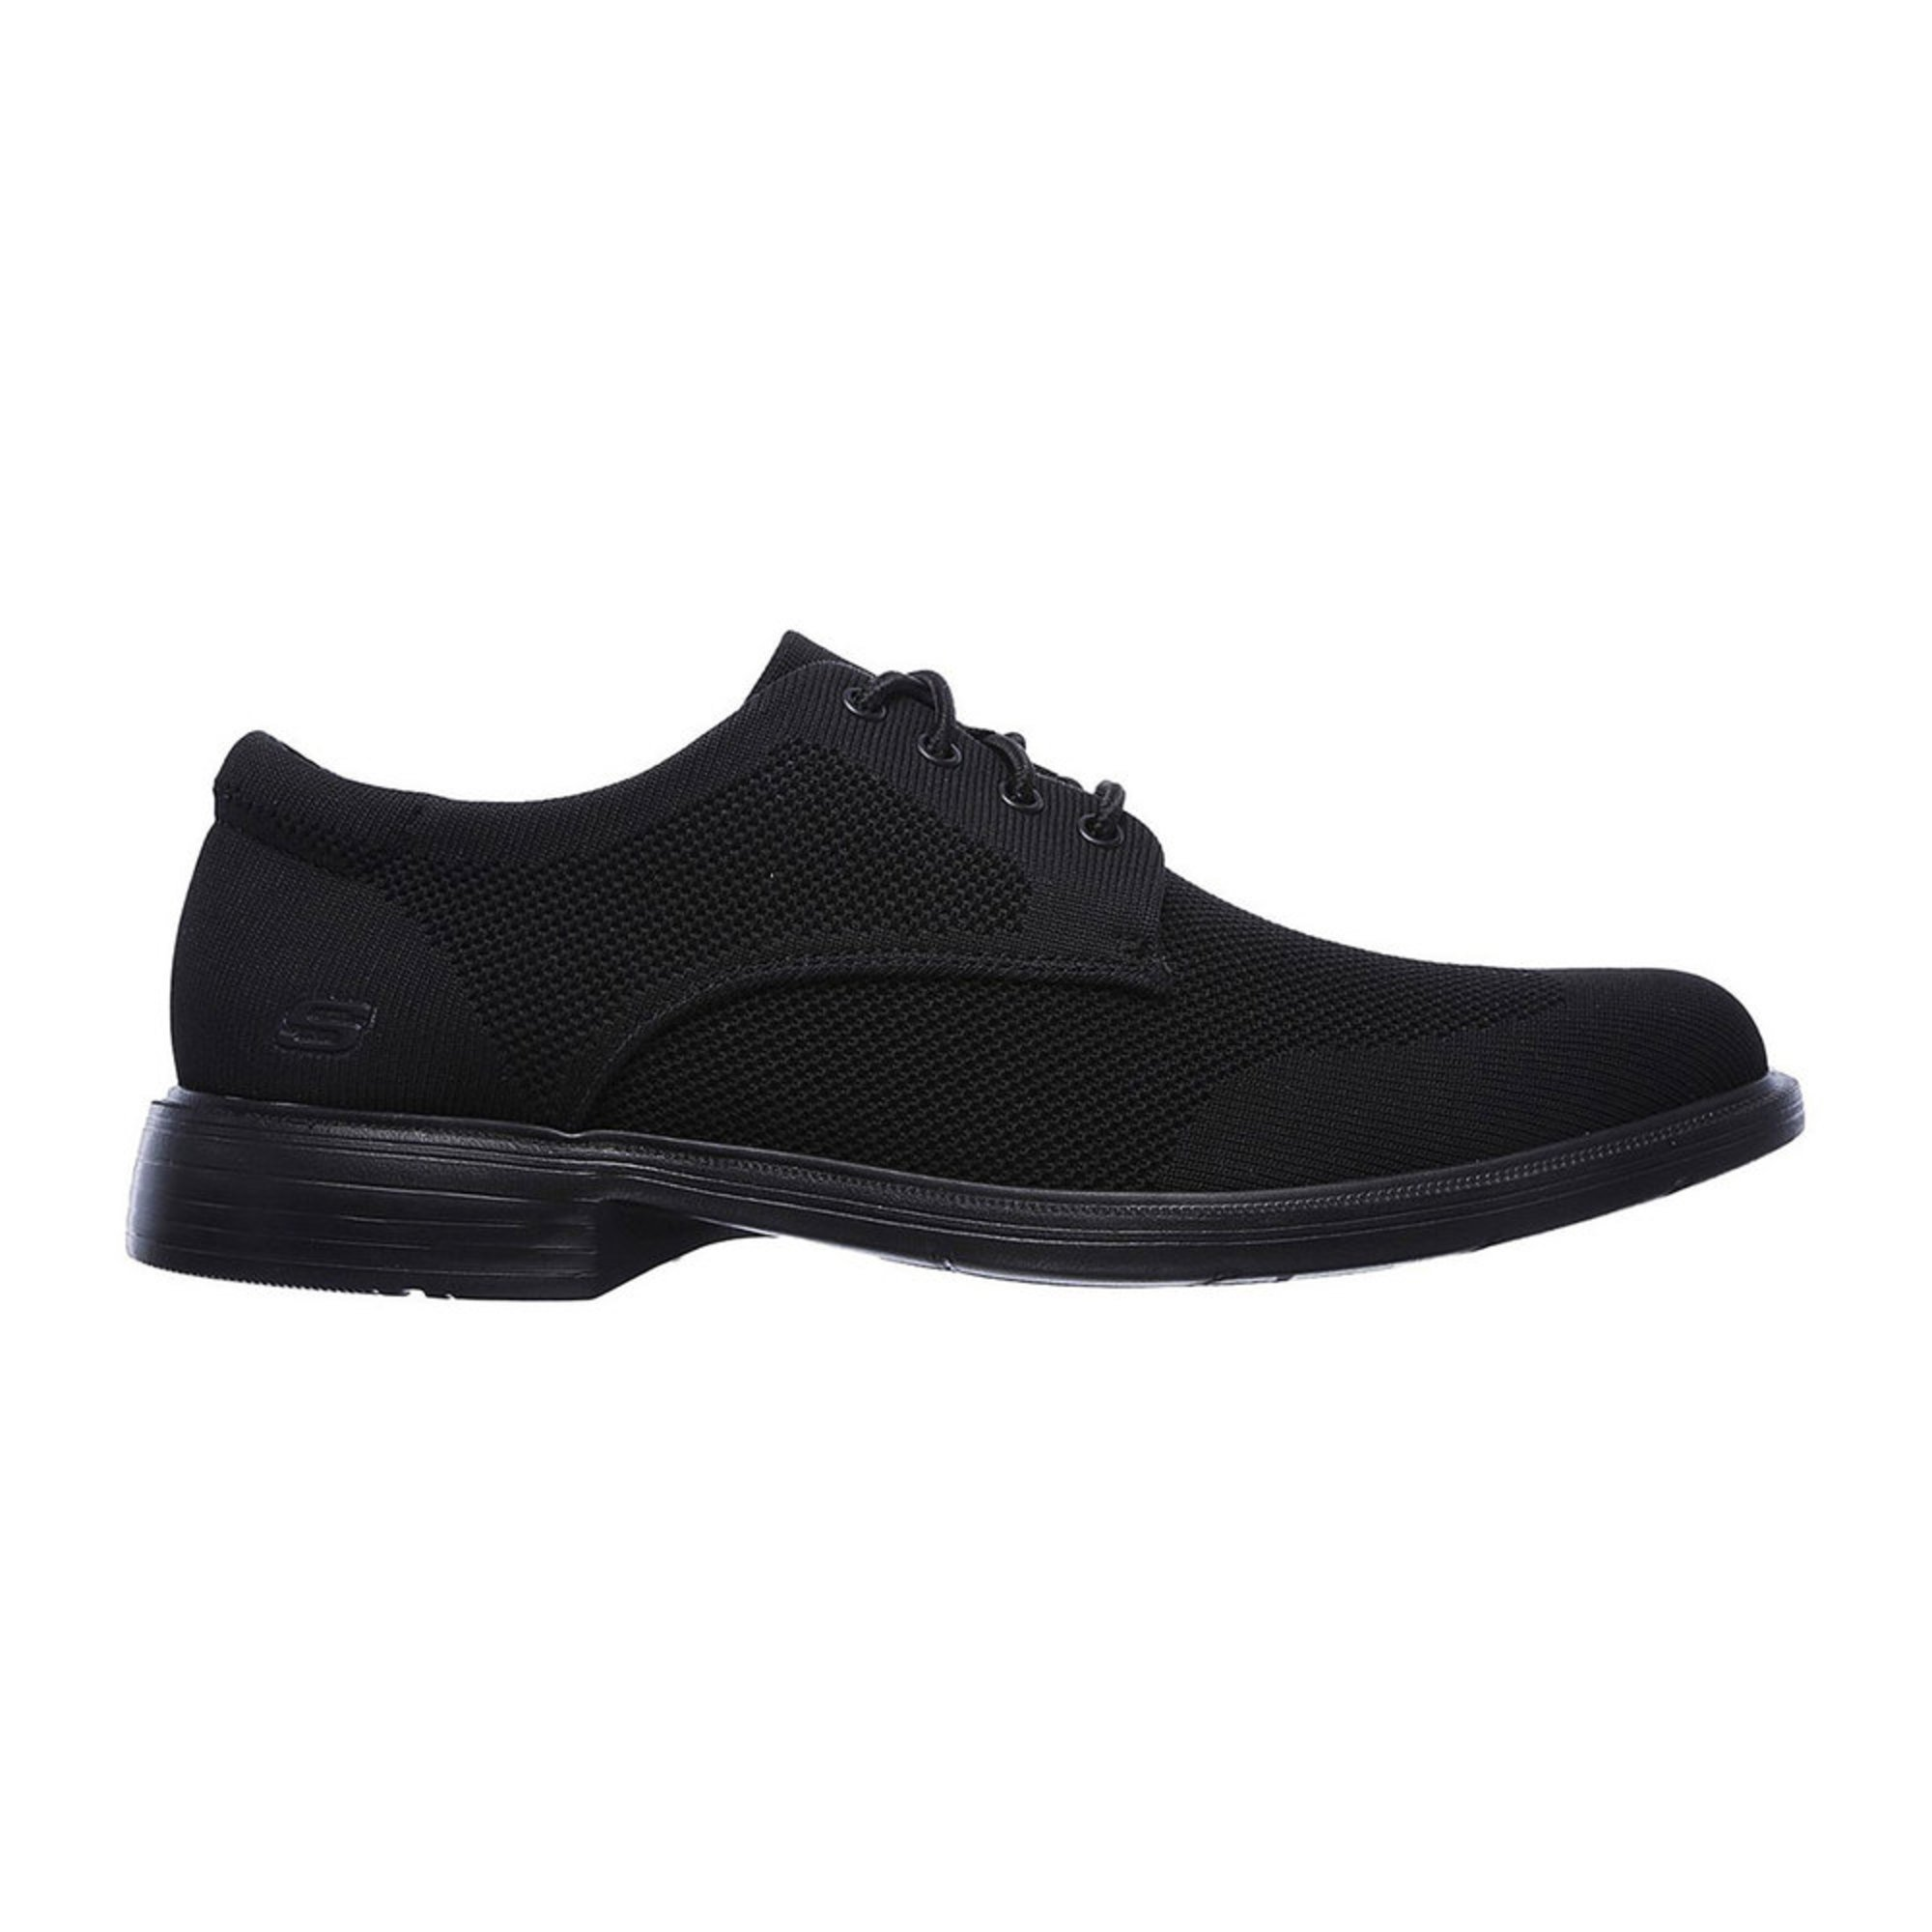 for whole family online store new concept Skechers Men's Relaxed Fit Caswell Aleno Casual Shoe